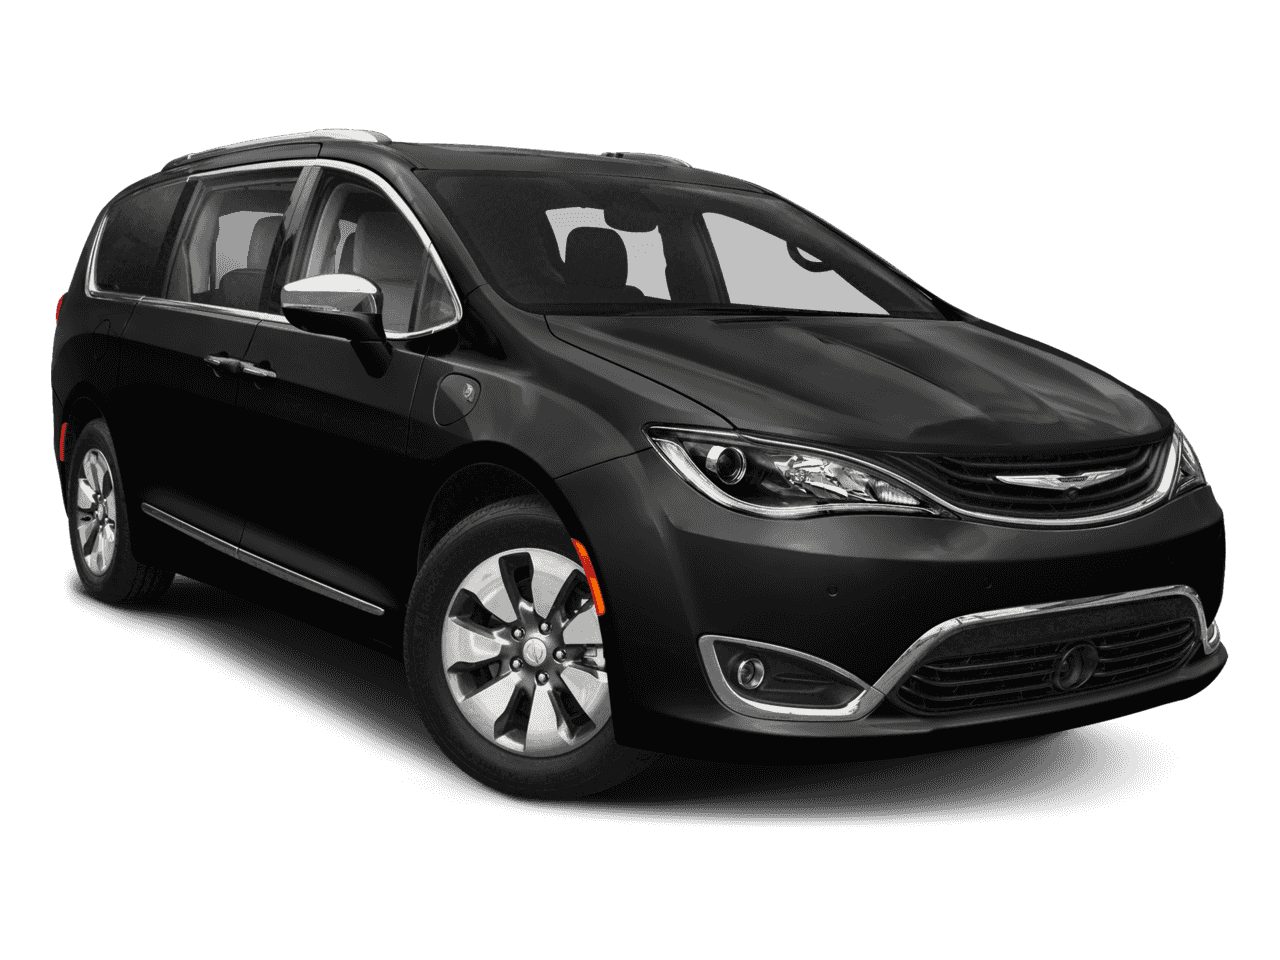 "2018 Chrysler<br/><span class=""vdp-trim"">Pacifica Hybrid Limited FWD Mini-van, Passenger</span>"